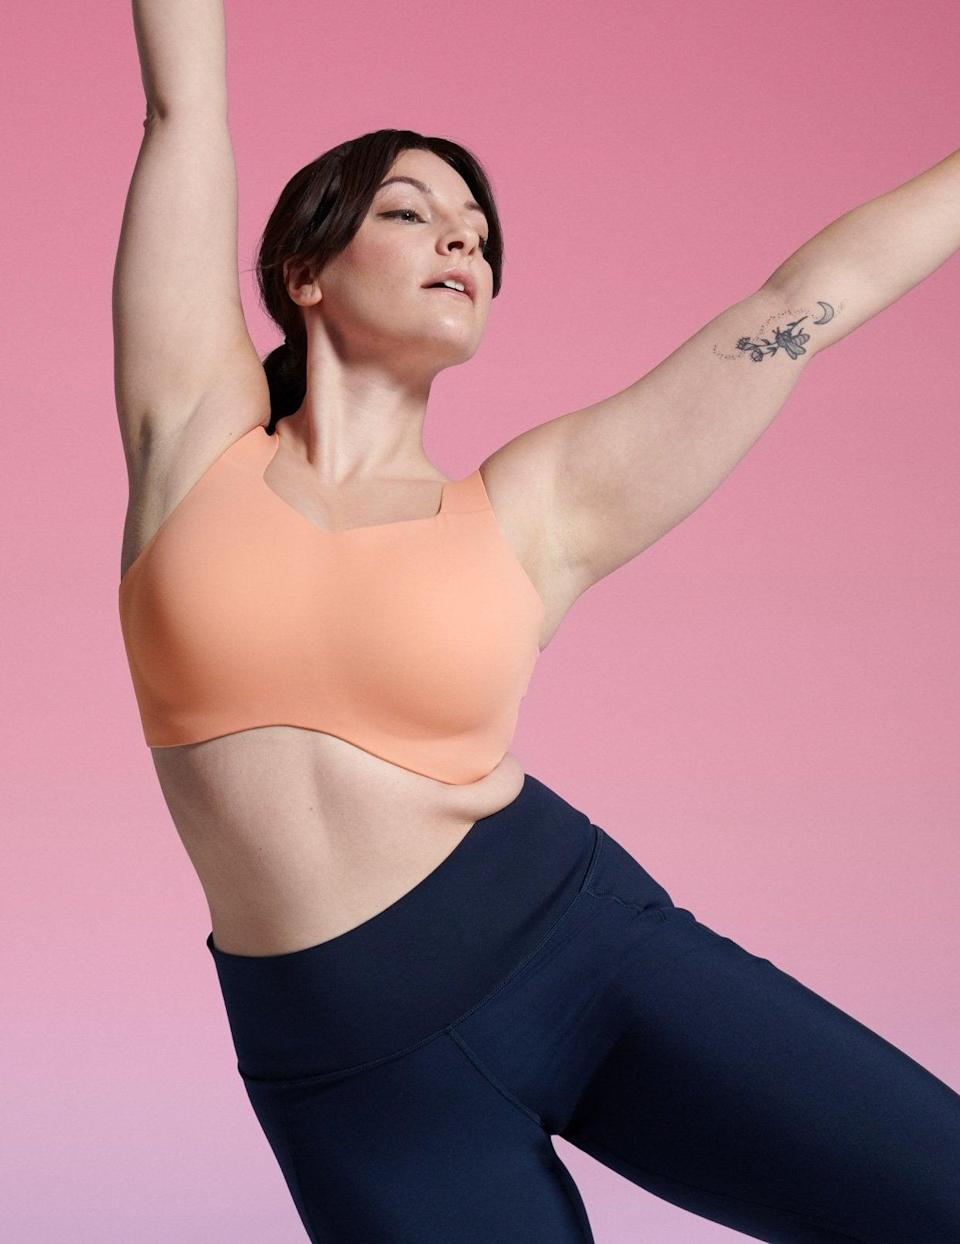 """<p>Training can be challenging, which is why you want to make sure you have gear that supports you throughout your most intense workouts. Our executive style director highly recommends the <span>Knix Catalyst Sports Bra</span> ($90). </p> <p>""""Finding a good running bra made all the difference for me. This bra gives a ton of support, is fully adjustable, and is also really smooth against your skin."""" - DAC</p>"""